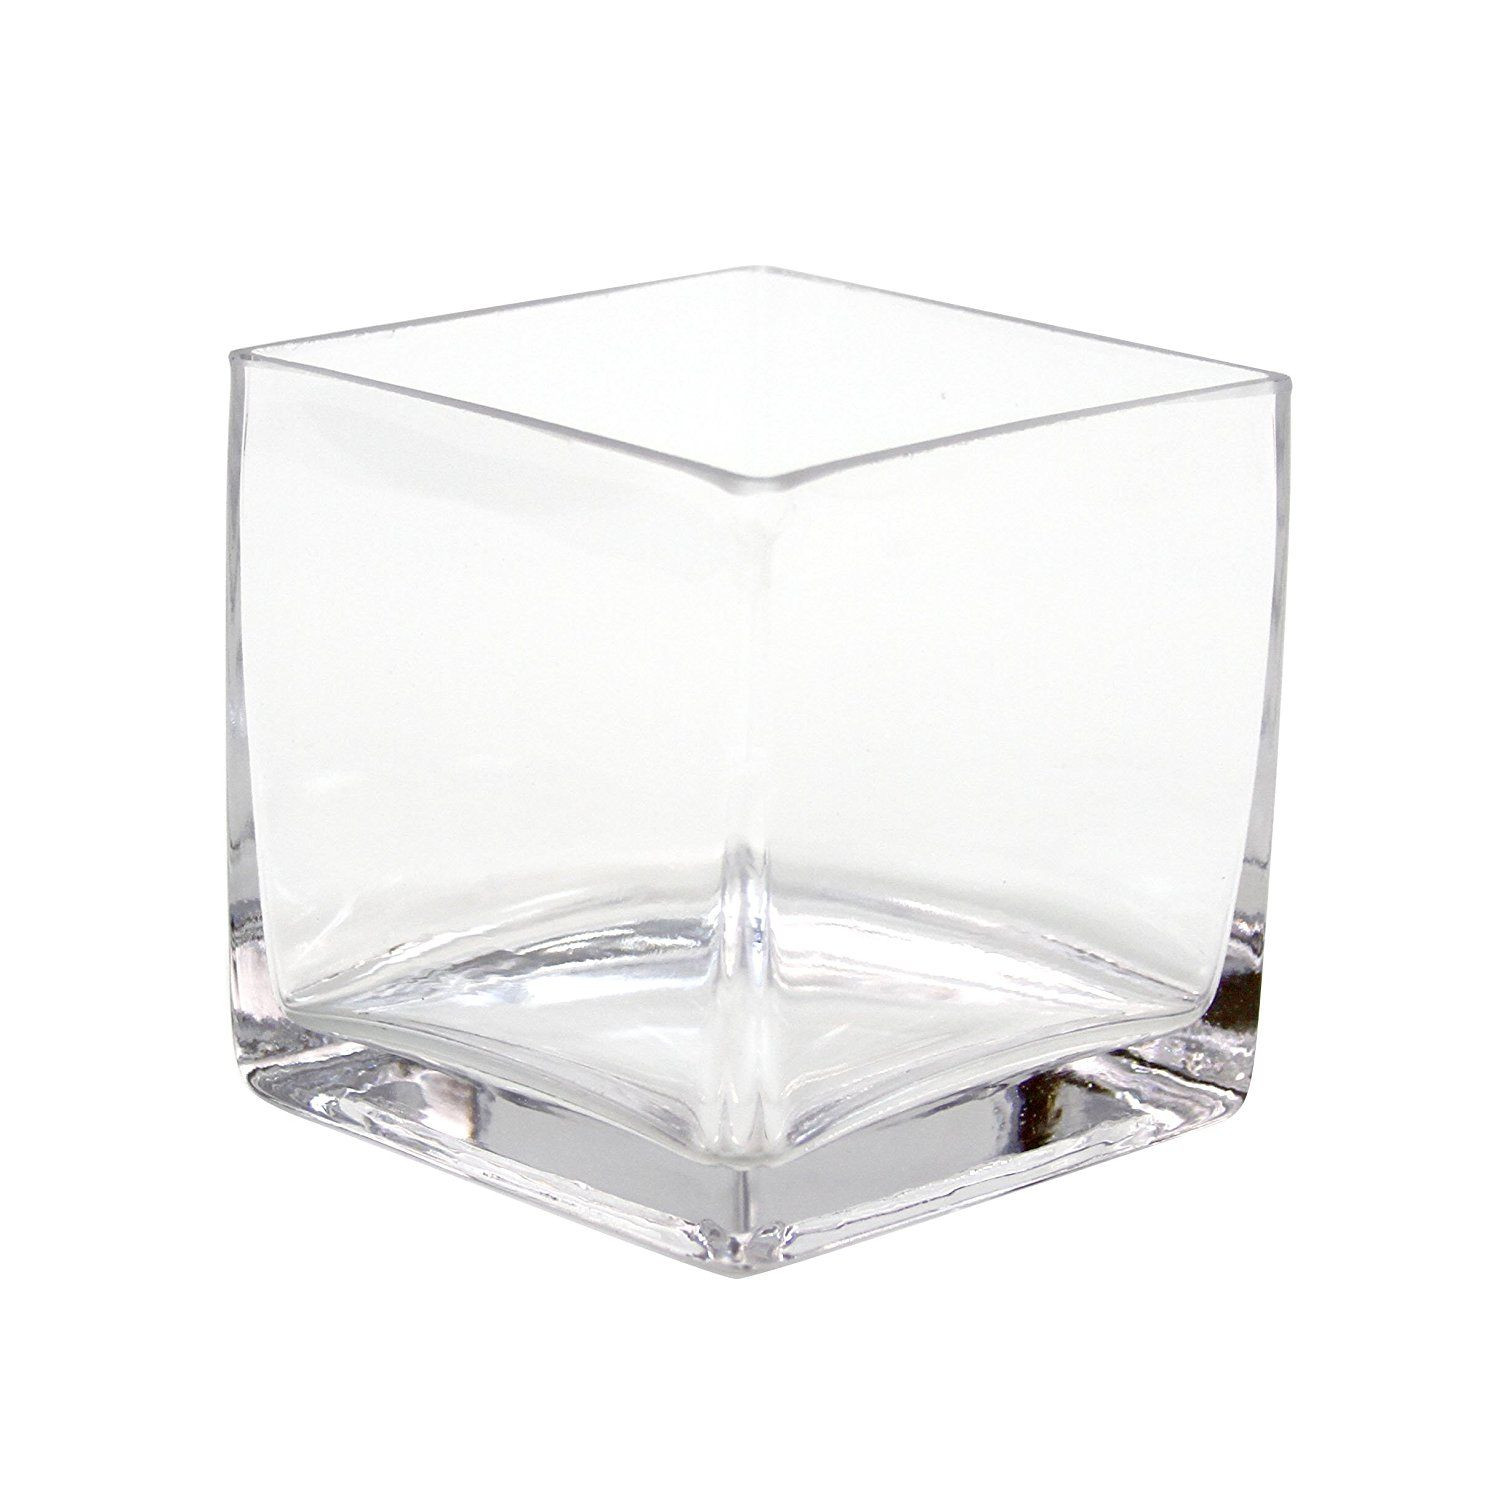 old glass vases of koyal wholesale 404343 12 pack cube square glass vases 4 by 4 by 4 inside glass